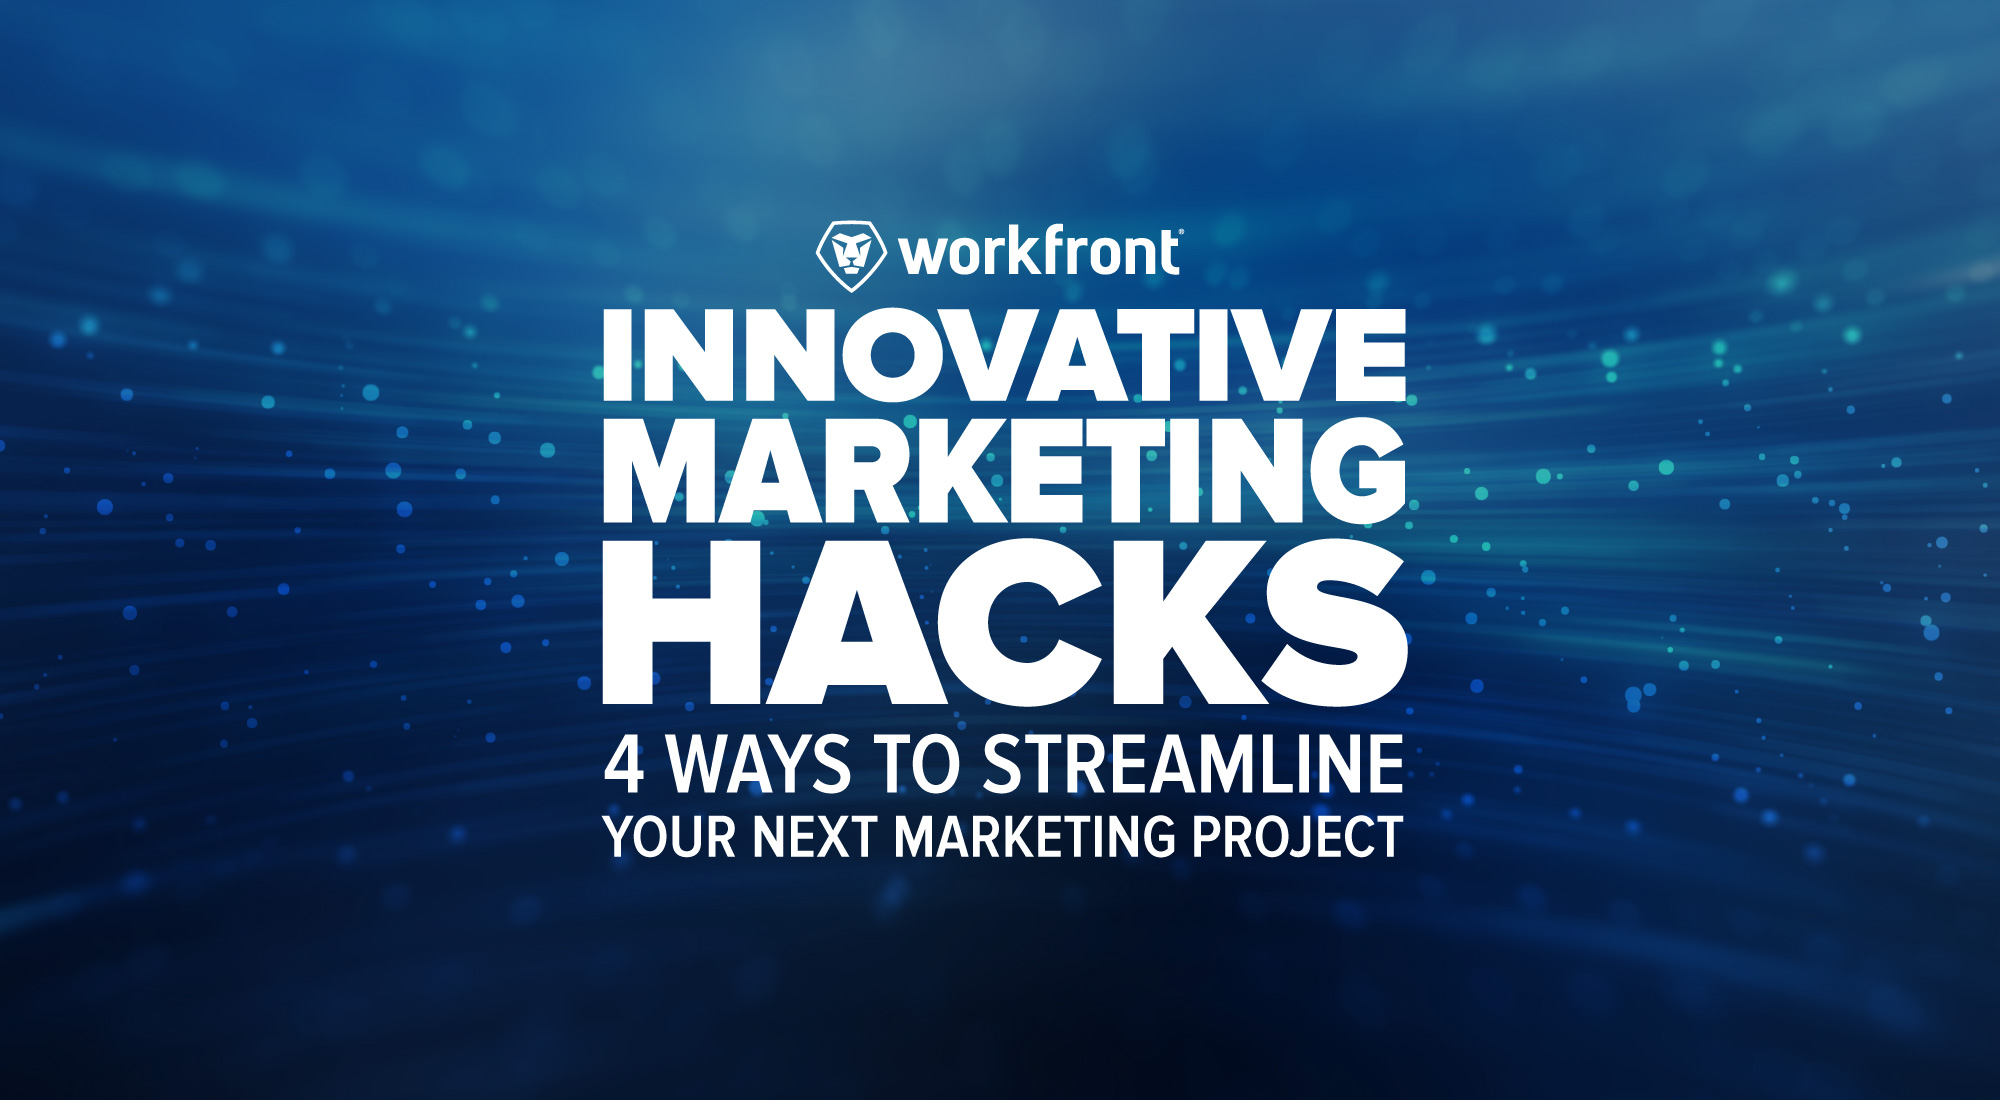 4 Ways to Streamline Your Next Marketing Project